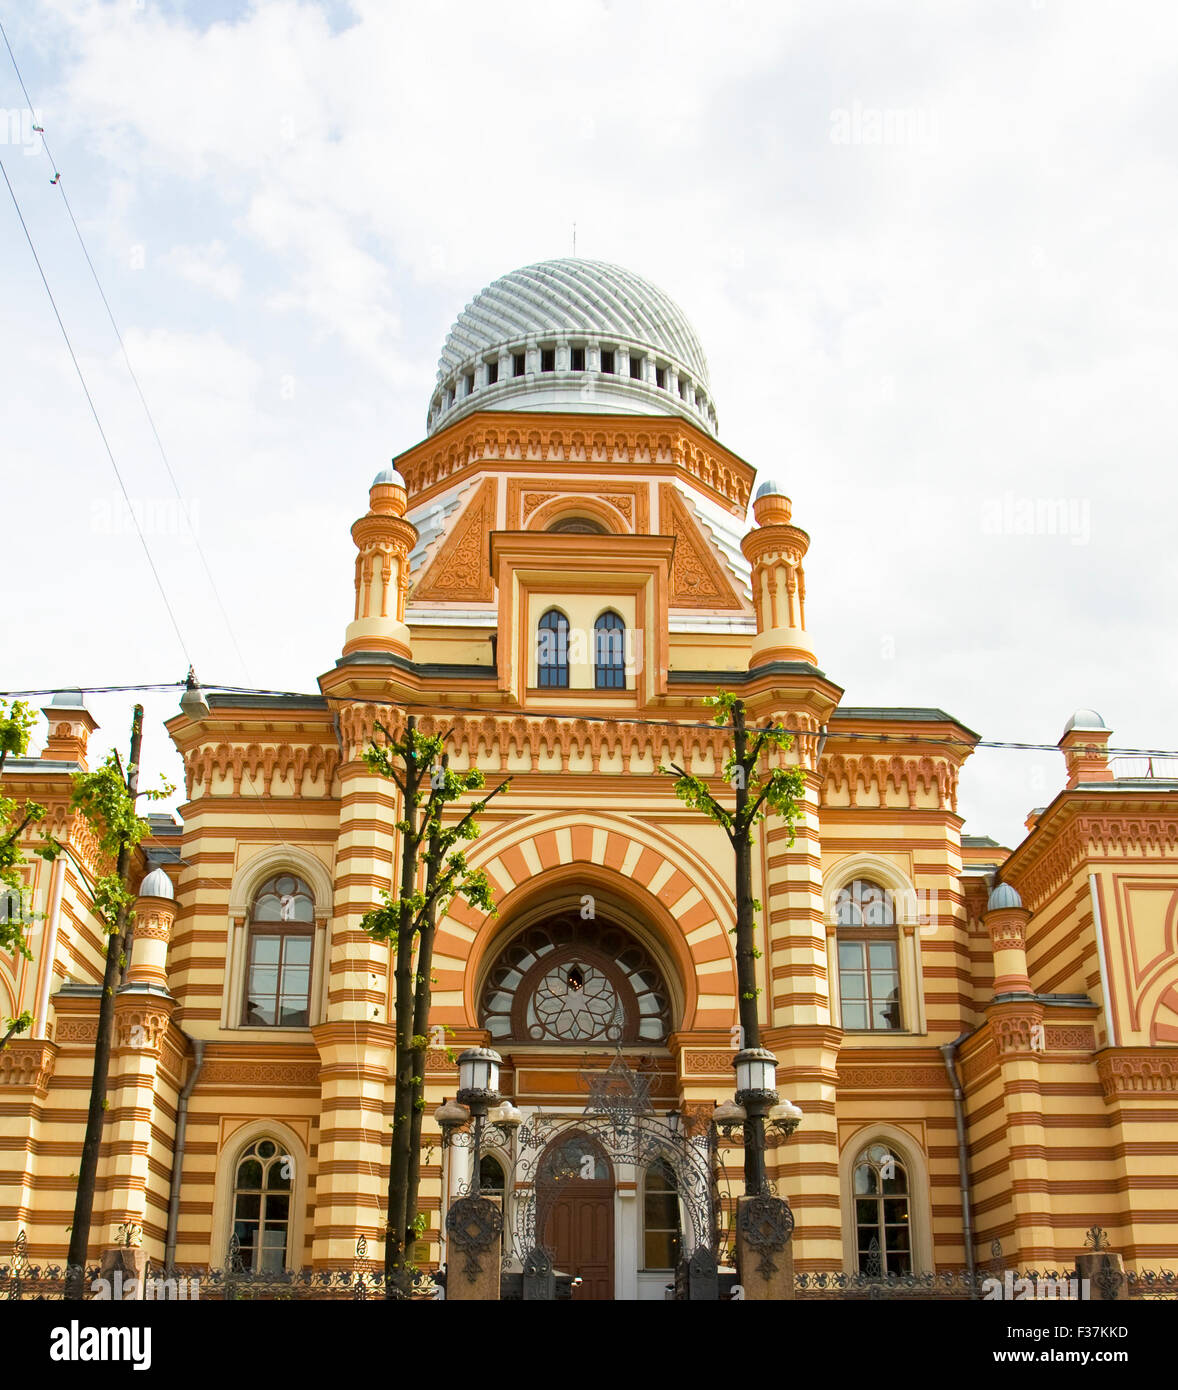 St. Petersburg, Russia, Big synagogue. - Stock Image